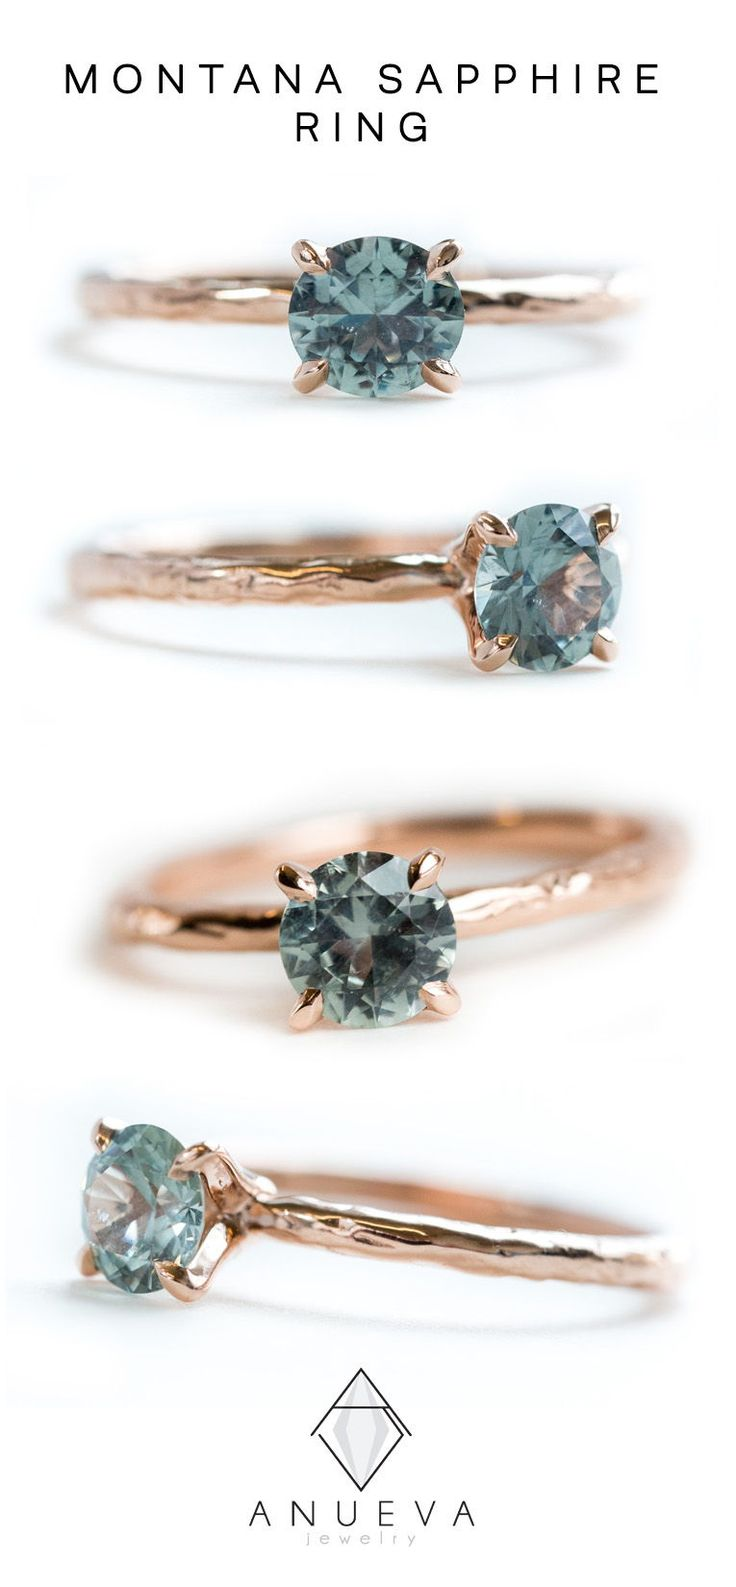 MONTANA SAPPHIRES- We love everything about these! Responsibly mined in America, gorgeous mermaid tones, and unique. They look amazing set in rose gold. Anueva Jewelry #mermaidsapphire #peacocksapphire #montanasapphire